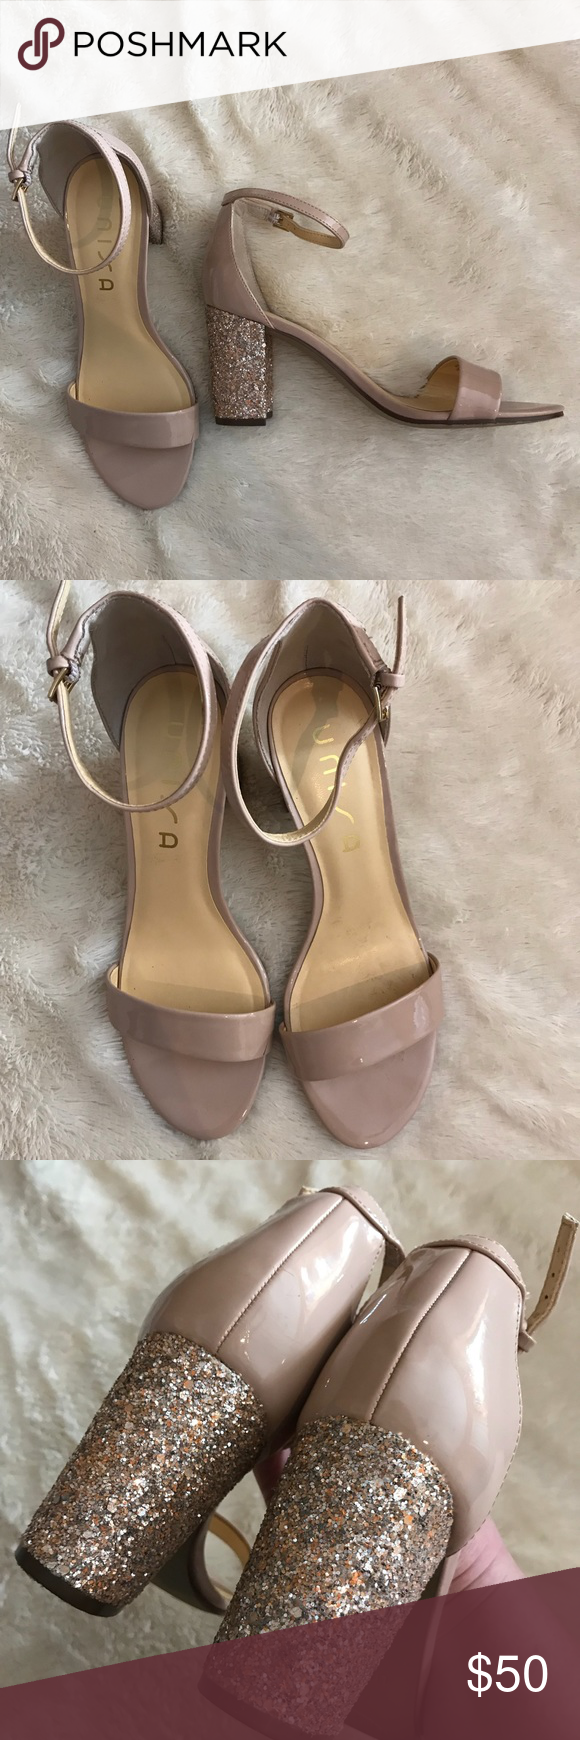 3e04b7dbf6a5 Unisa Rose Gold Glitter Heels Size 8 and a half or 8.5 or 8 1/2 Worn to try  on, very minimal wear, great condition. Rose gold heel and nude faux  leather on ...